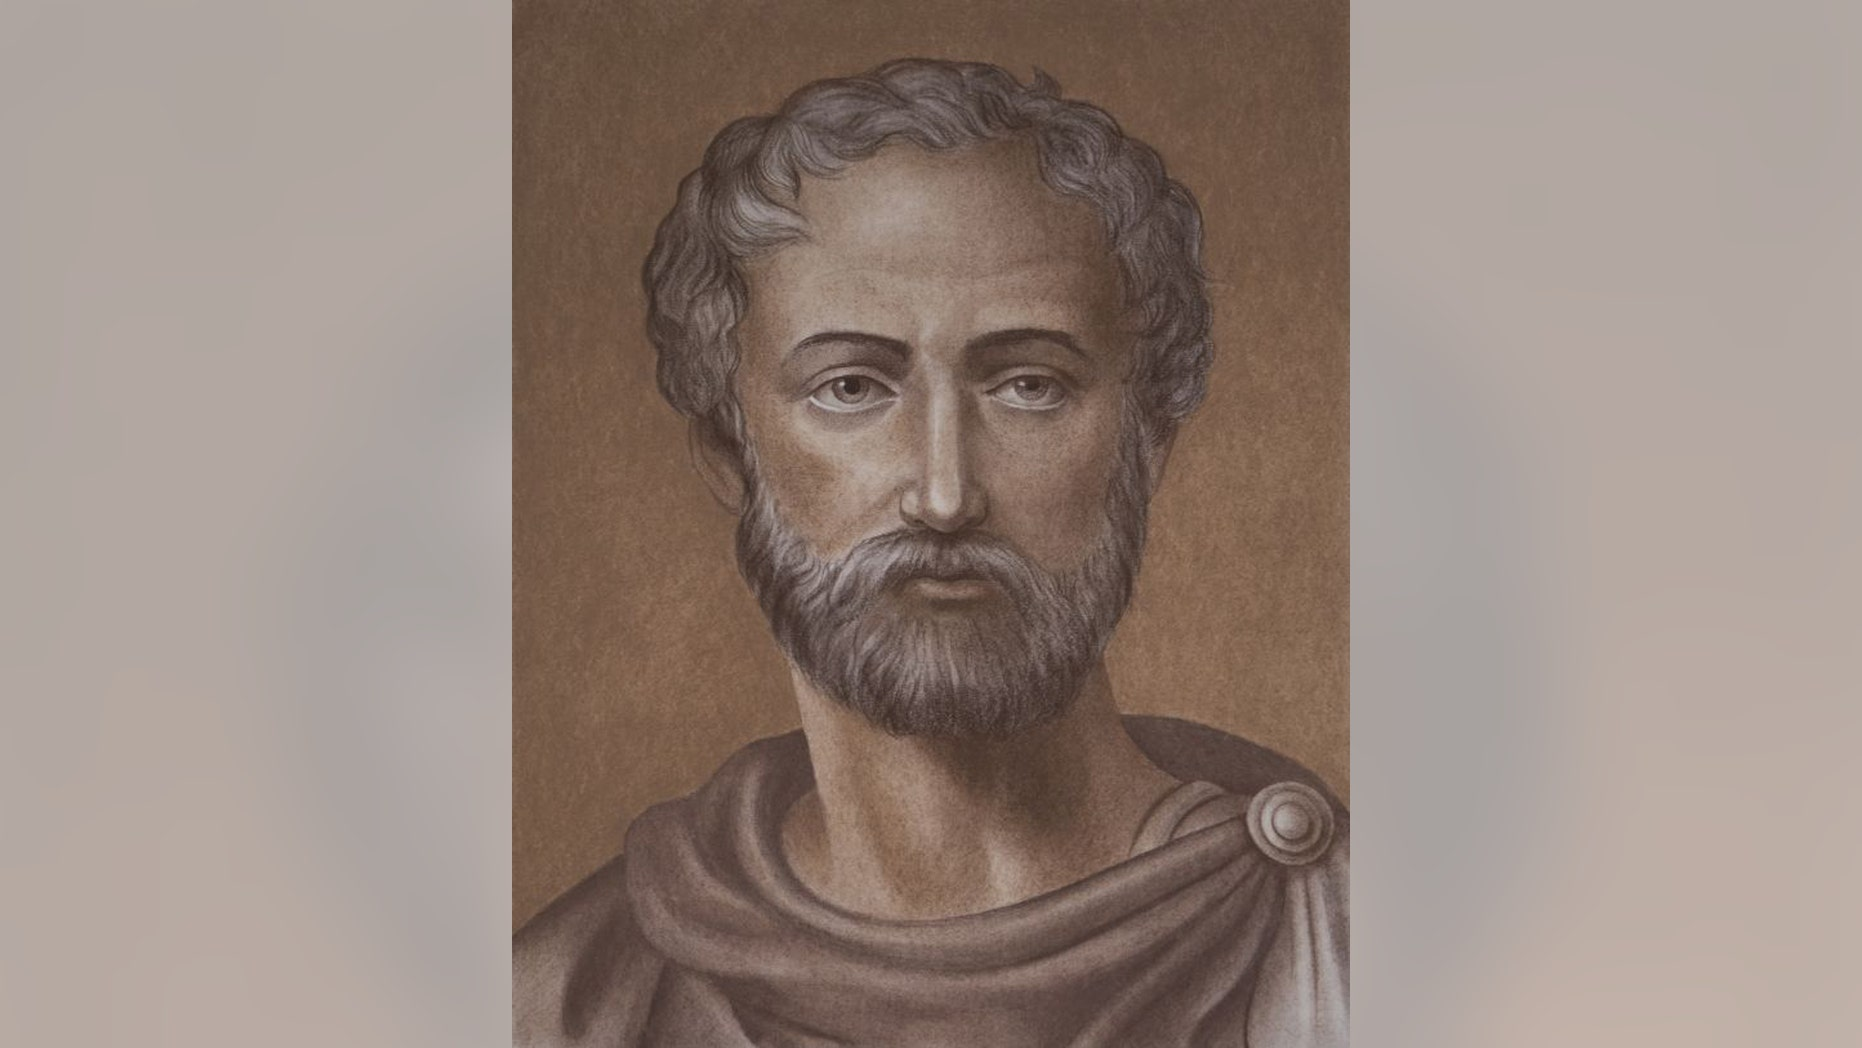 Westlake Legal Group pliny-the-elder Pliny the Elder died in the Mount Vesuvius eruption of A.D. 79. Is this his skull? LiveScience Laura Geggel fox-news/science/archaeology/ancient-rome fox-news/science fox-news/columns/digging-history fnc/science fnc e180b17e-5659-53e5-b74a-4c996cb9eb40 article